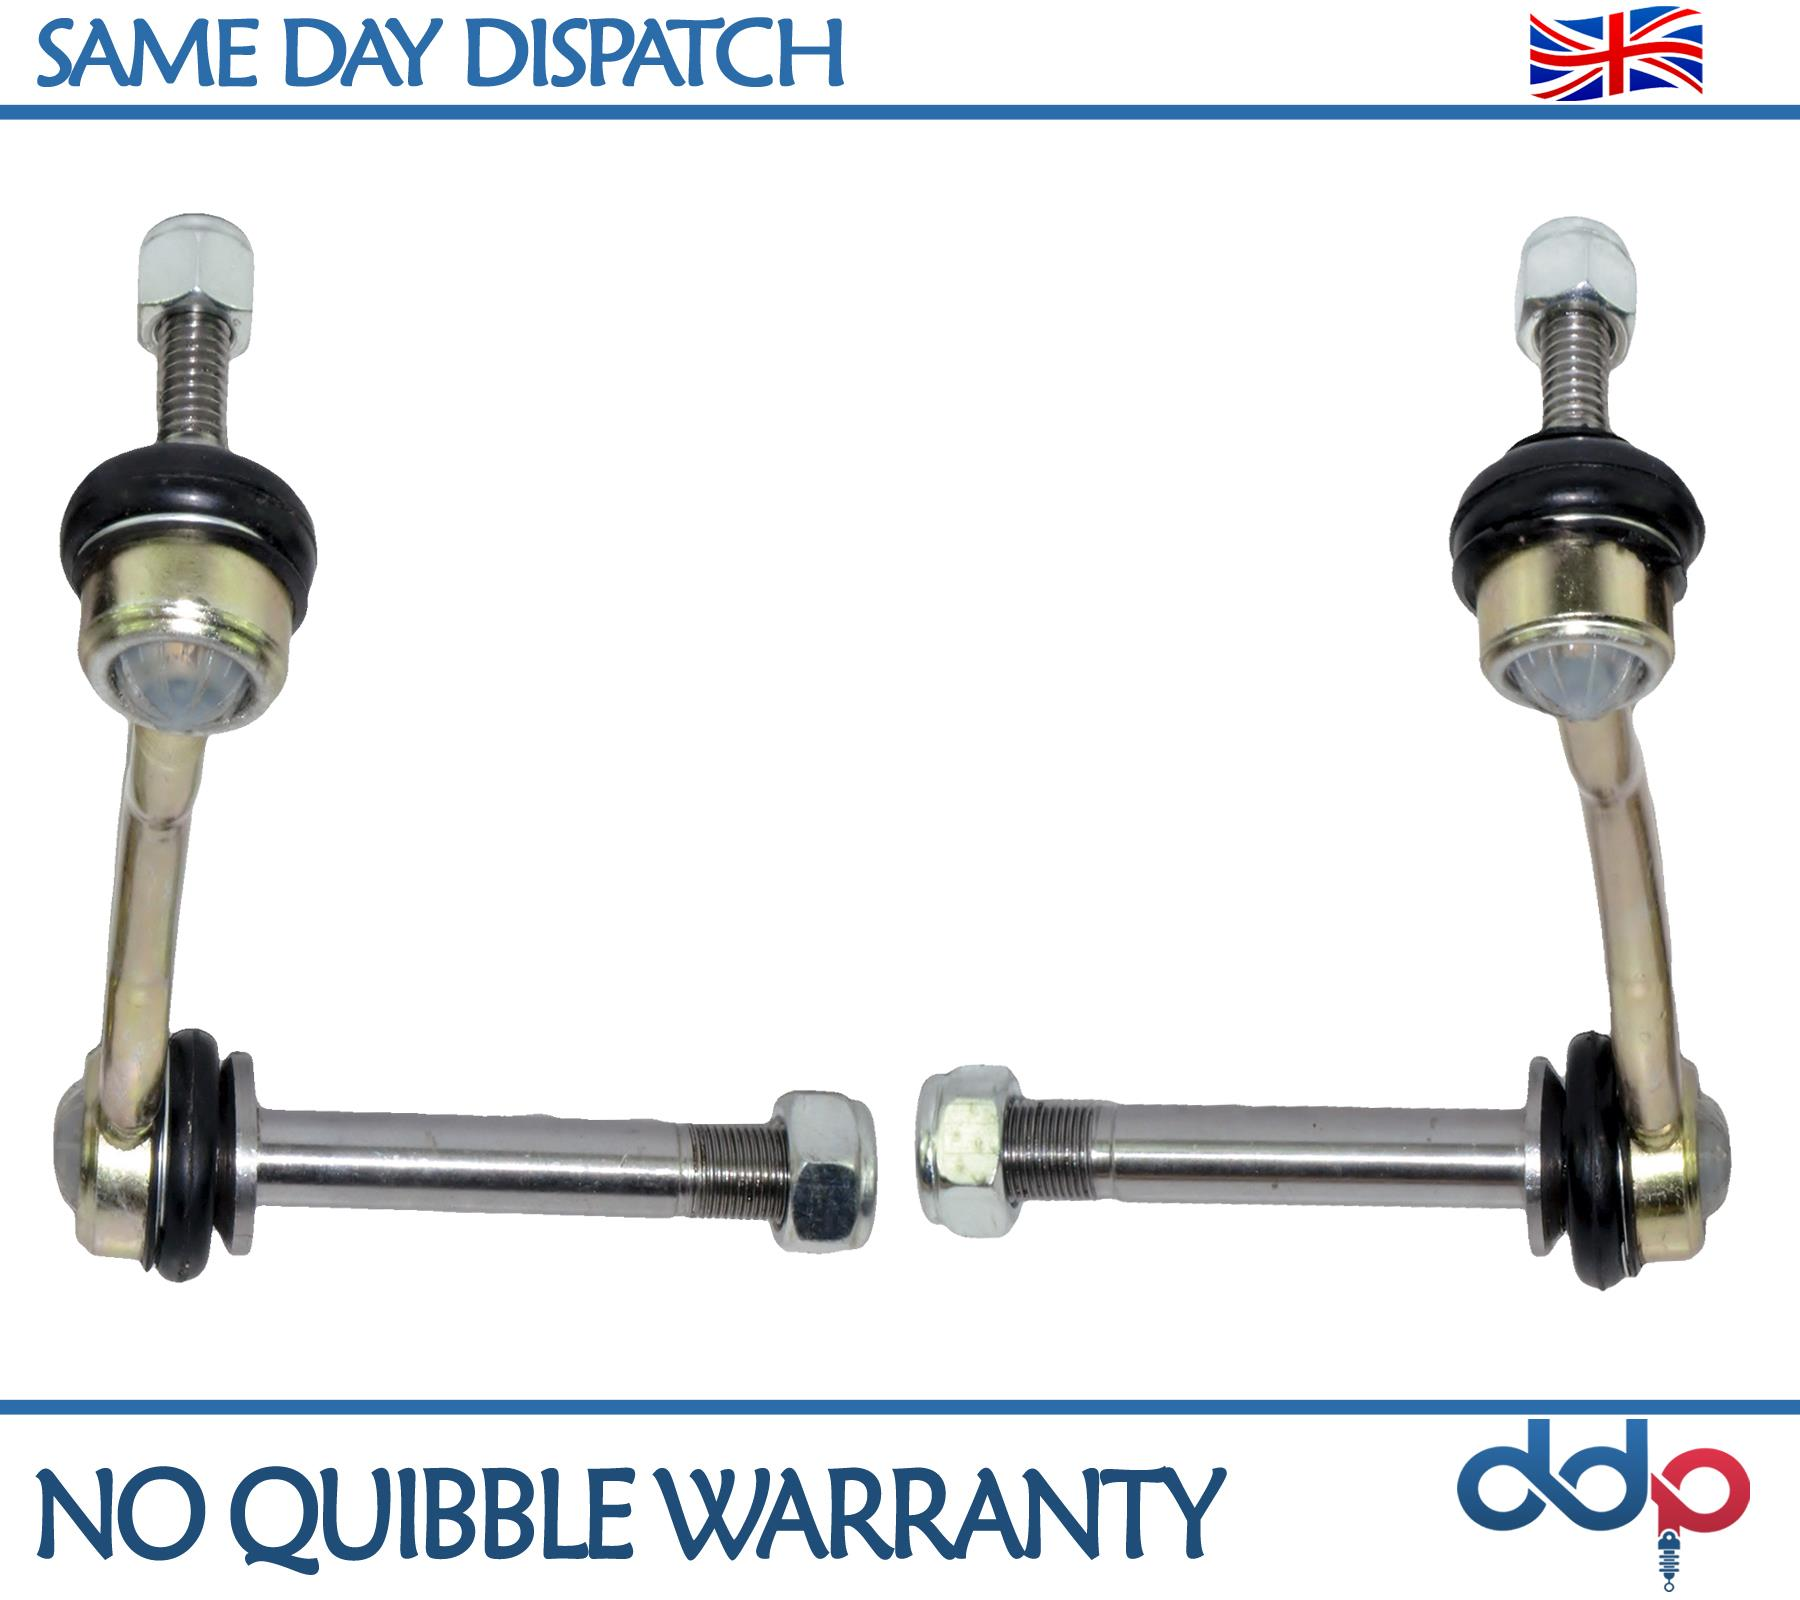 FOR 407 C5 C6 FRONT RIGHT STABILISER ANTIROLL SWAY BAR DROP LINK 5087.53